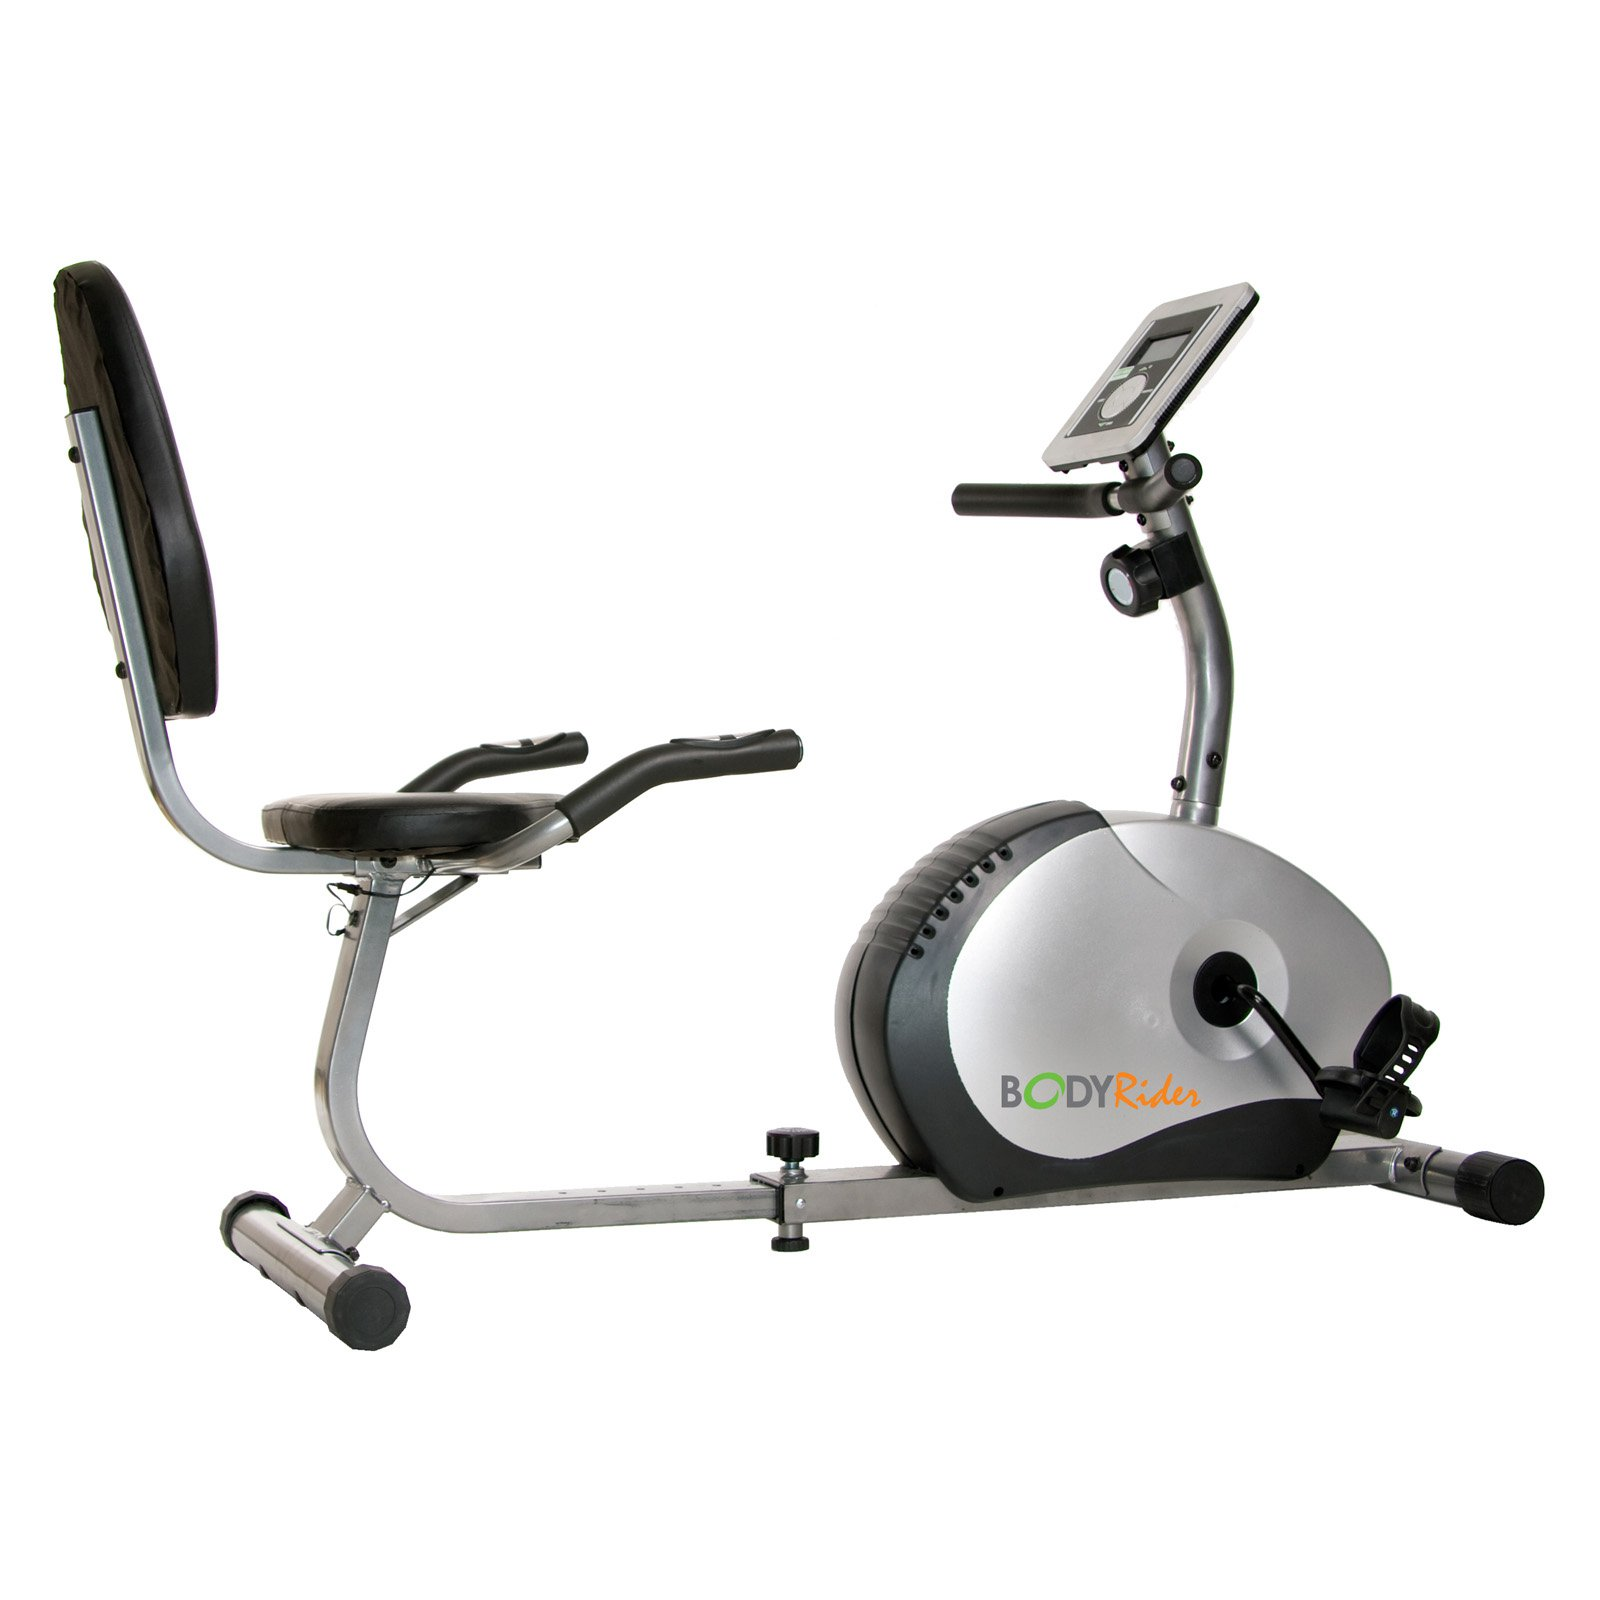 Body Champ BRB1270 Magnetic Recumbent Exercise Bike